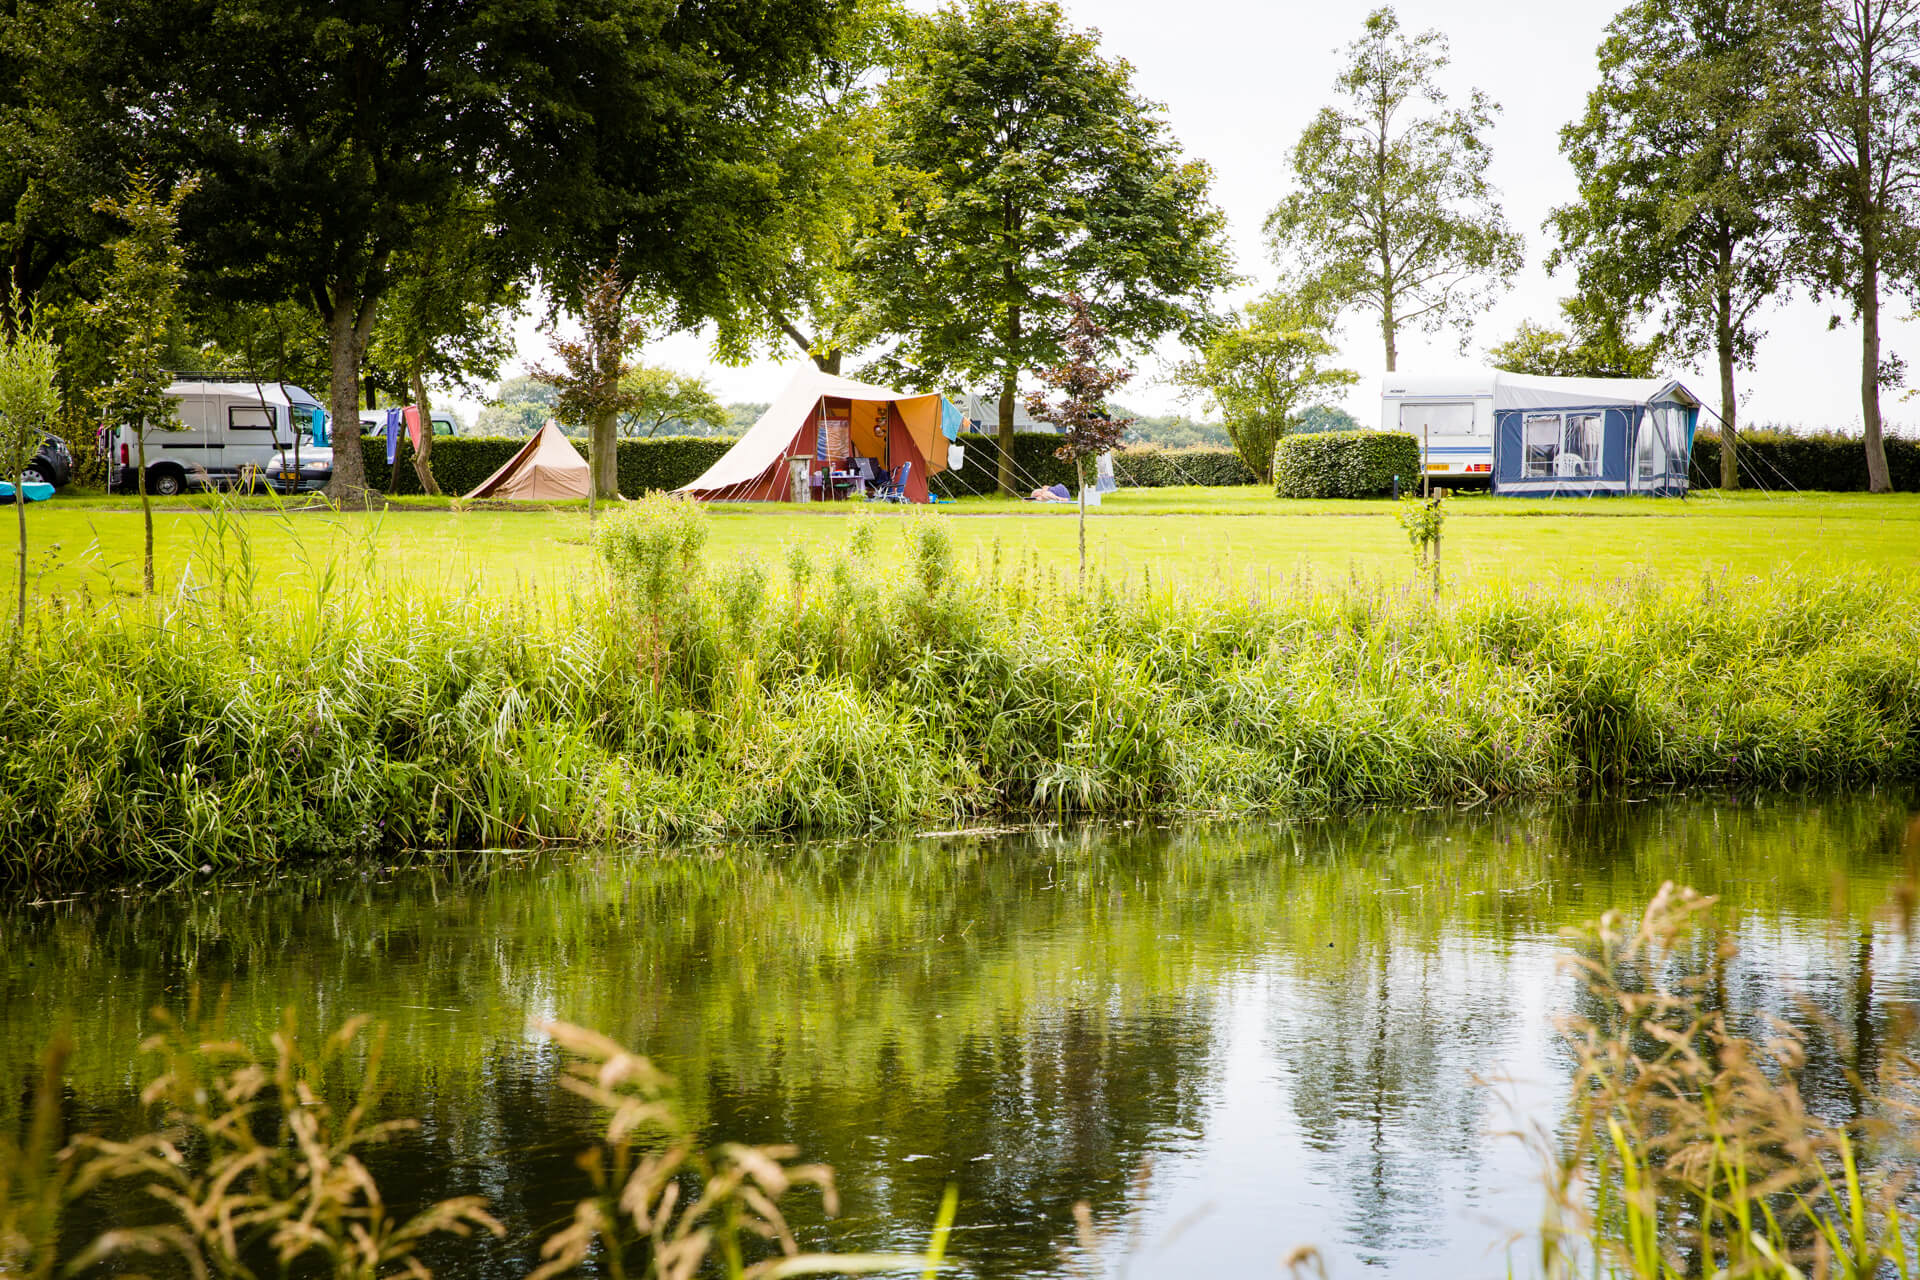 Camping Domein Groot Besselink